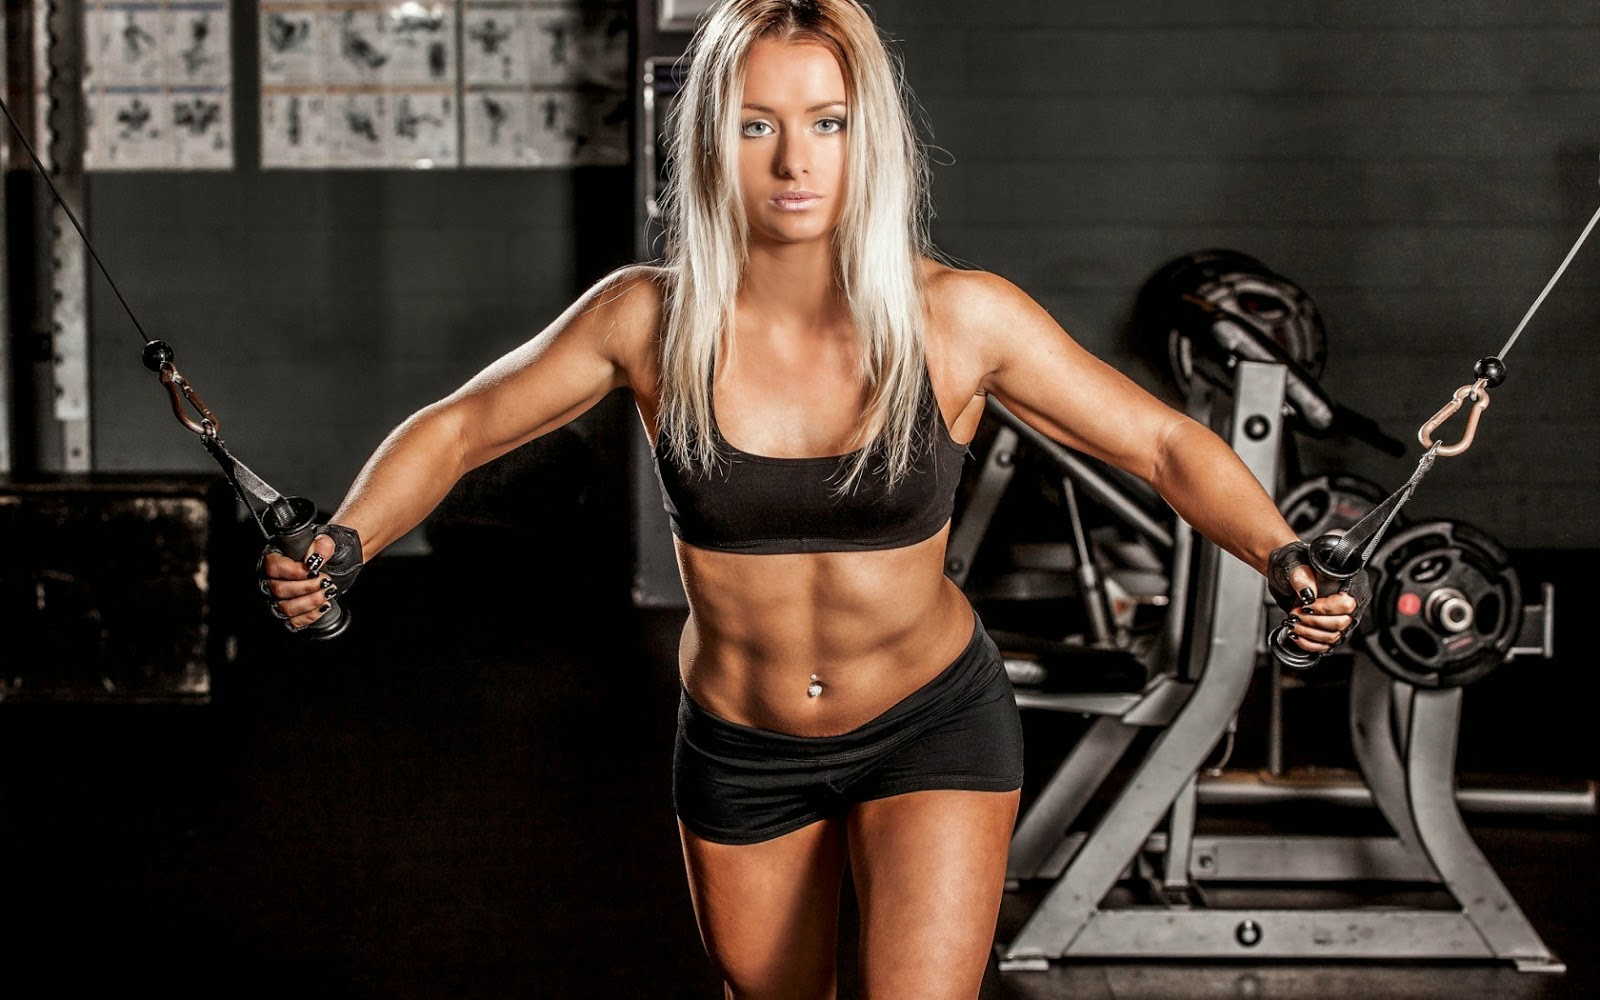 Exercise Routines for Weight Loss - Lose the Fat and Look Great